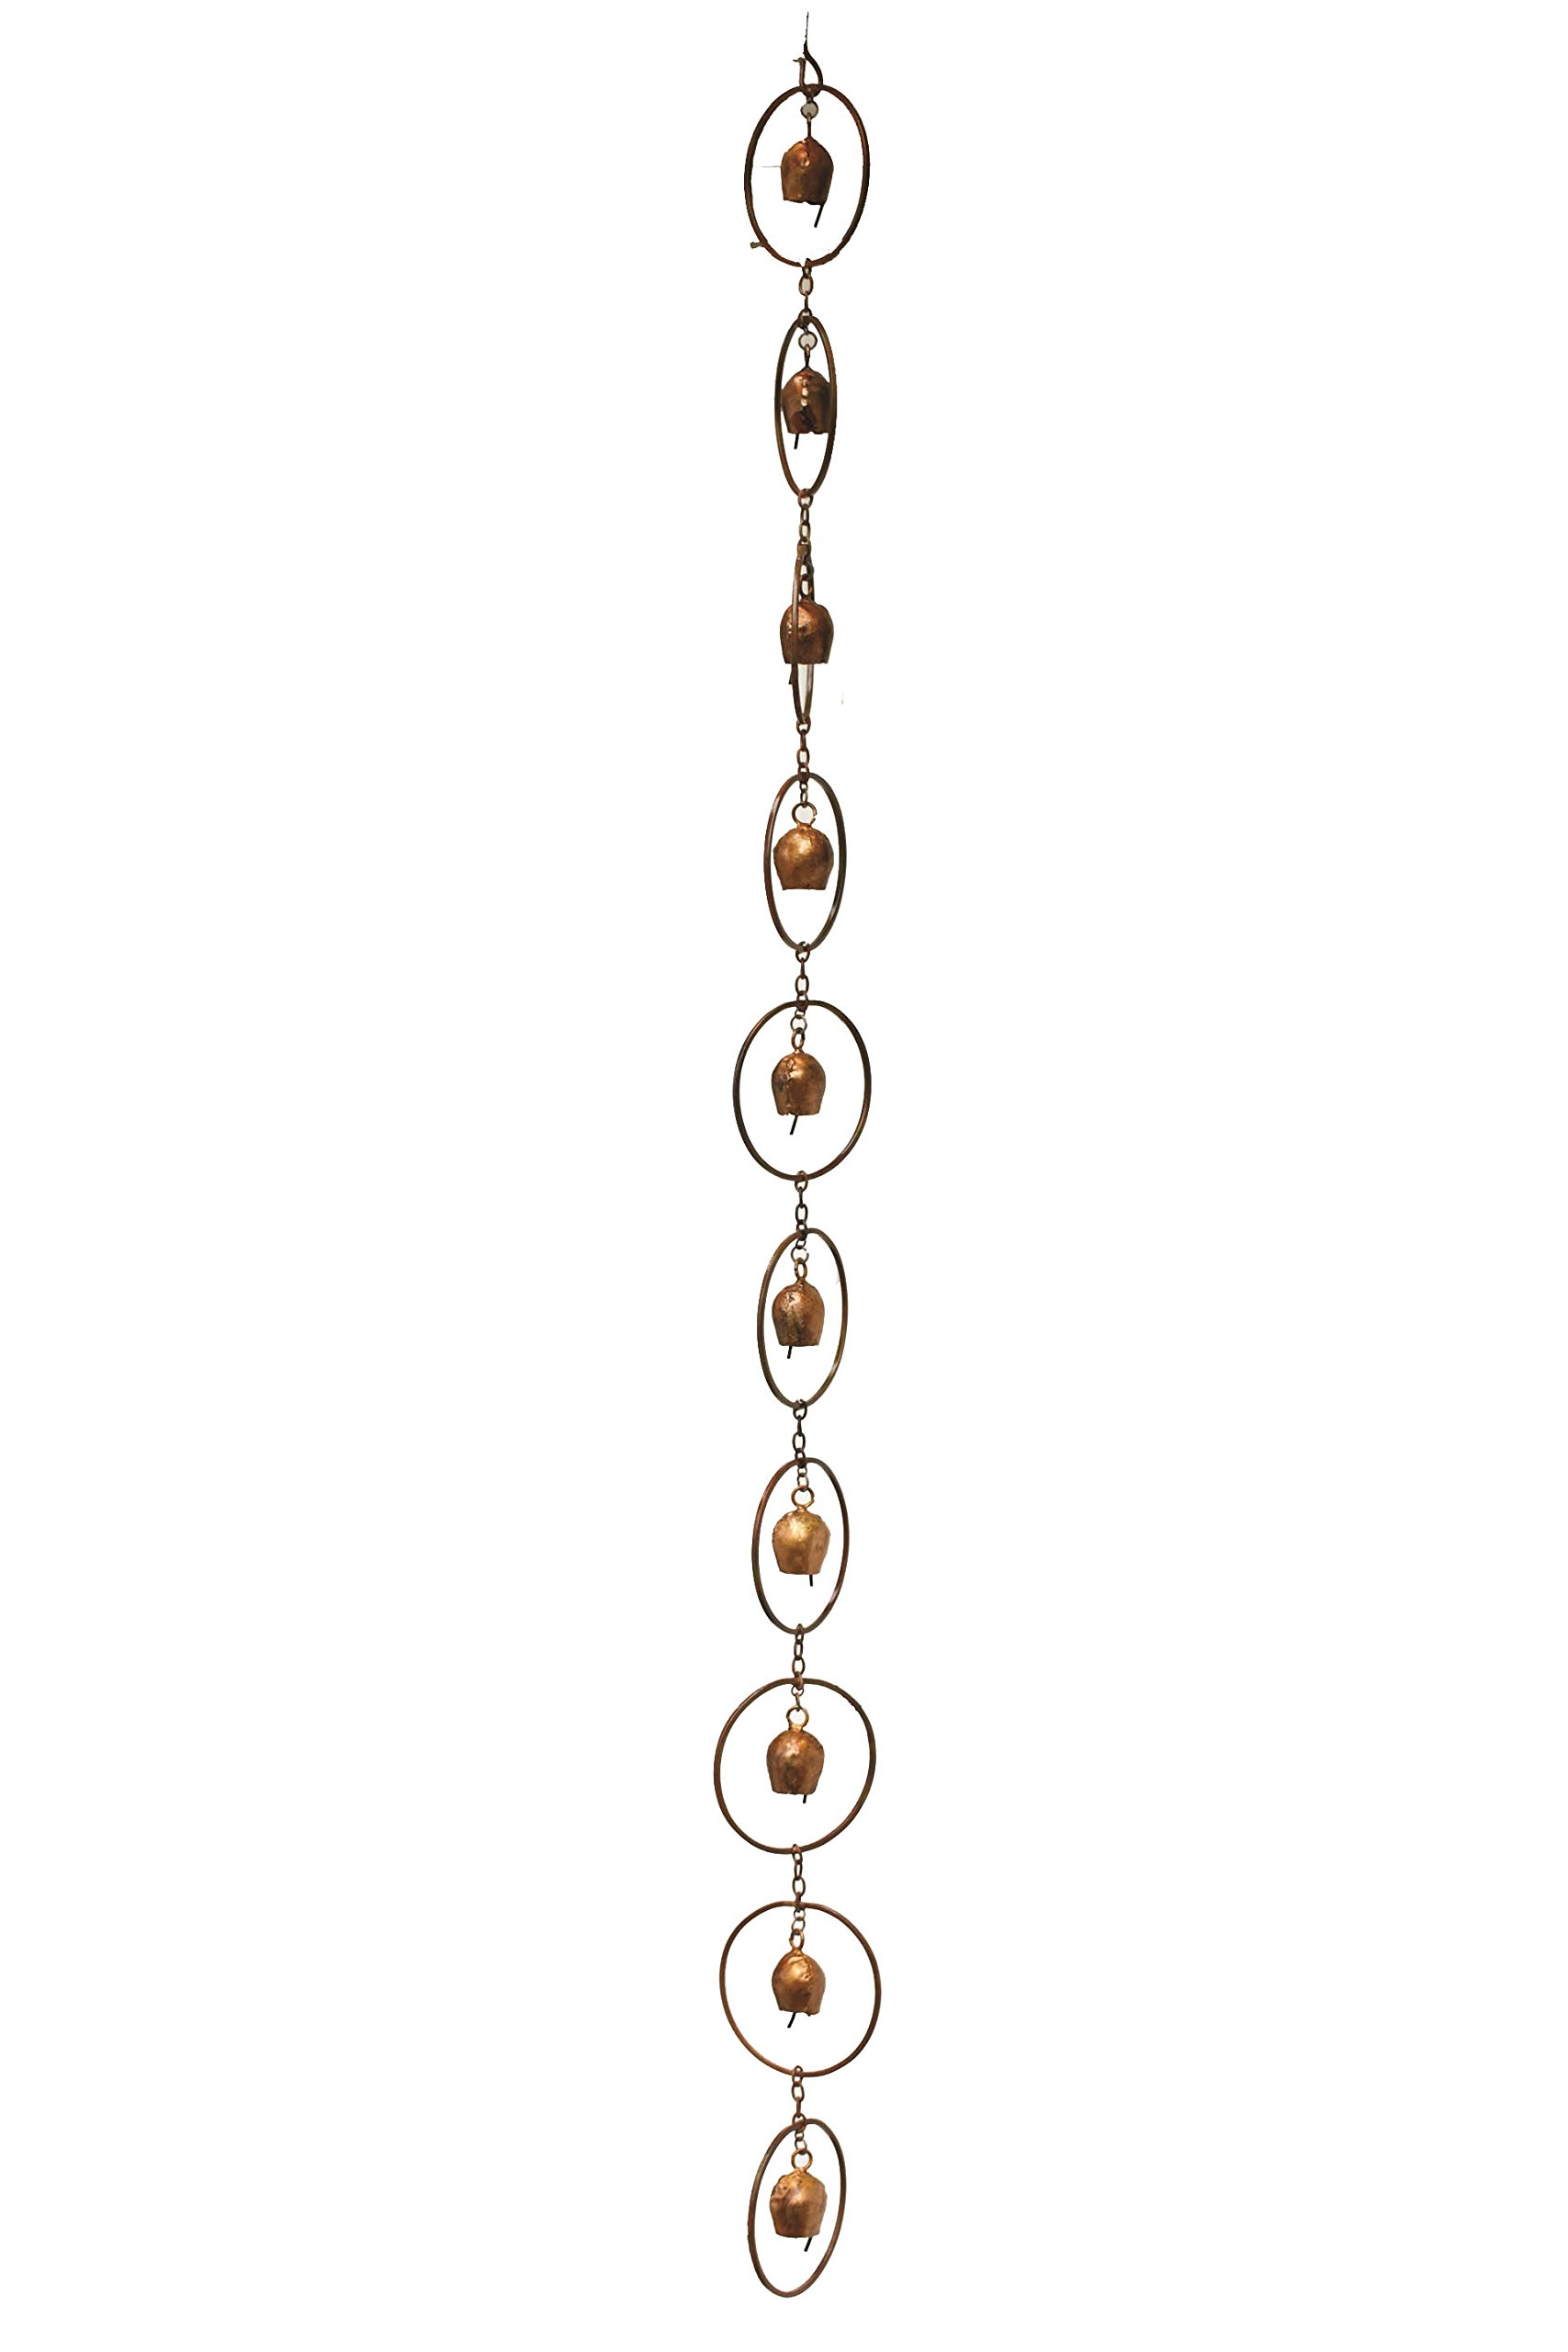 Ancient Graffiti Flamed Copper Bell Rain Chain, 4'' x 96'' x 4''